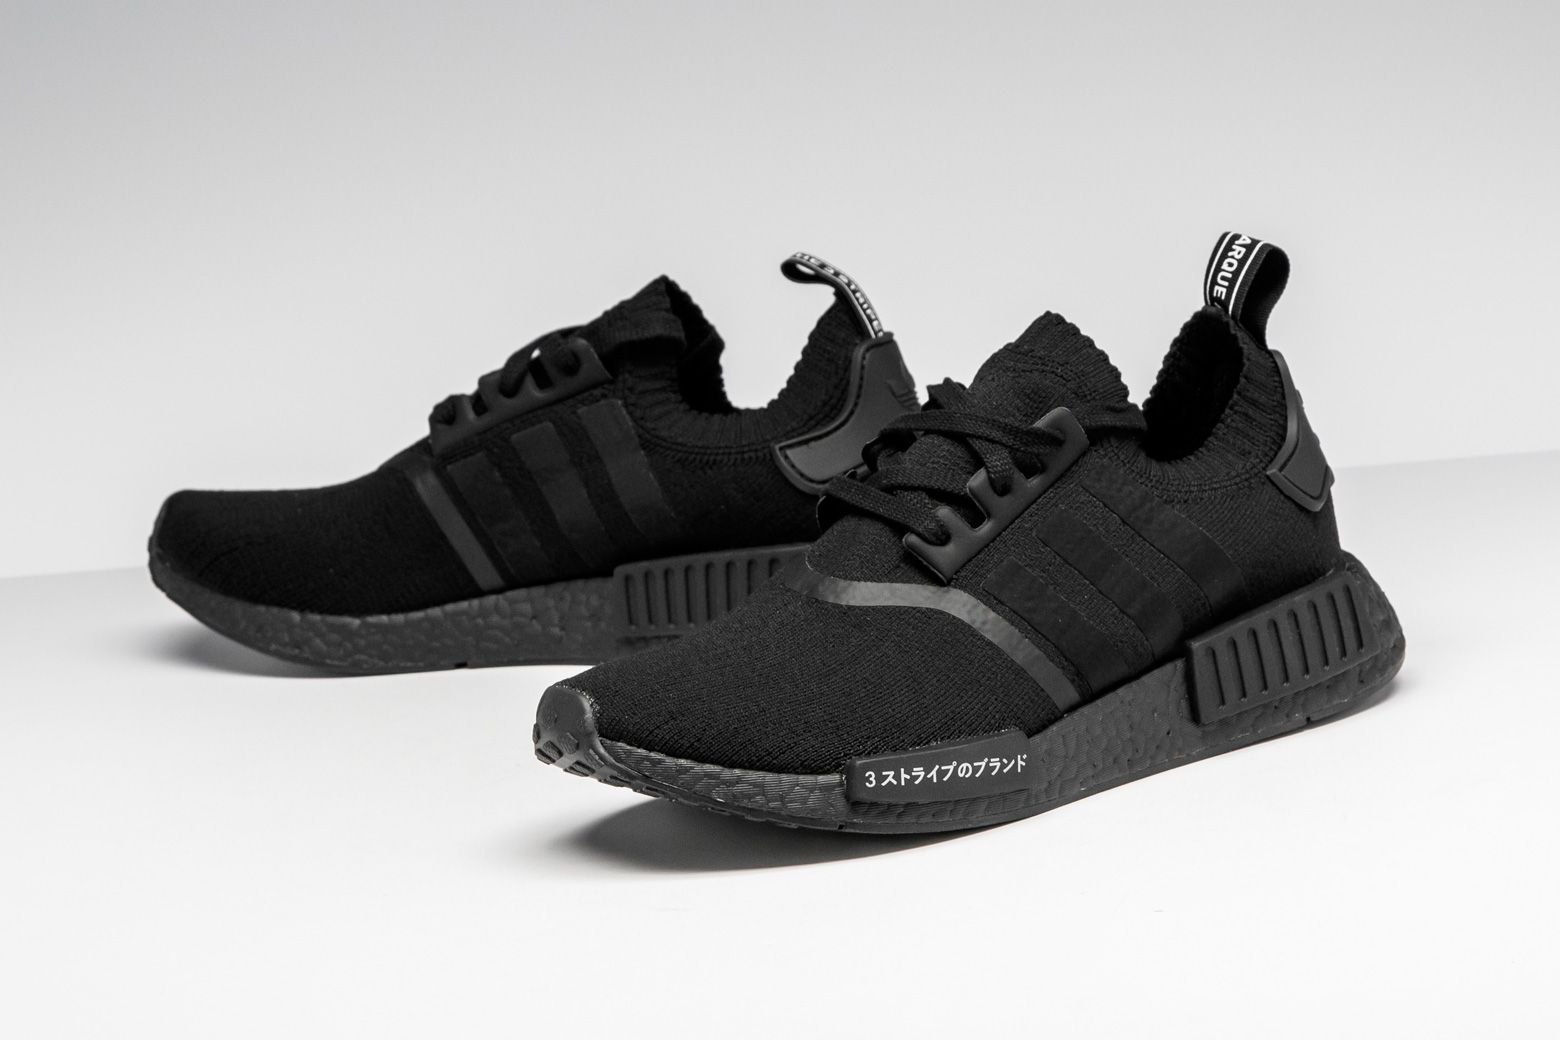 Where Does The Nmd R1 Primeknit Japan Rank Among The Best Adidas Triple Black Releases Https Www Stadiumgoods Com Nmd R1 Me Too Shoes Triple Black Adidas